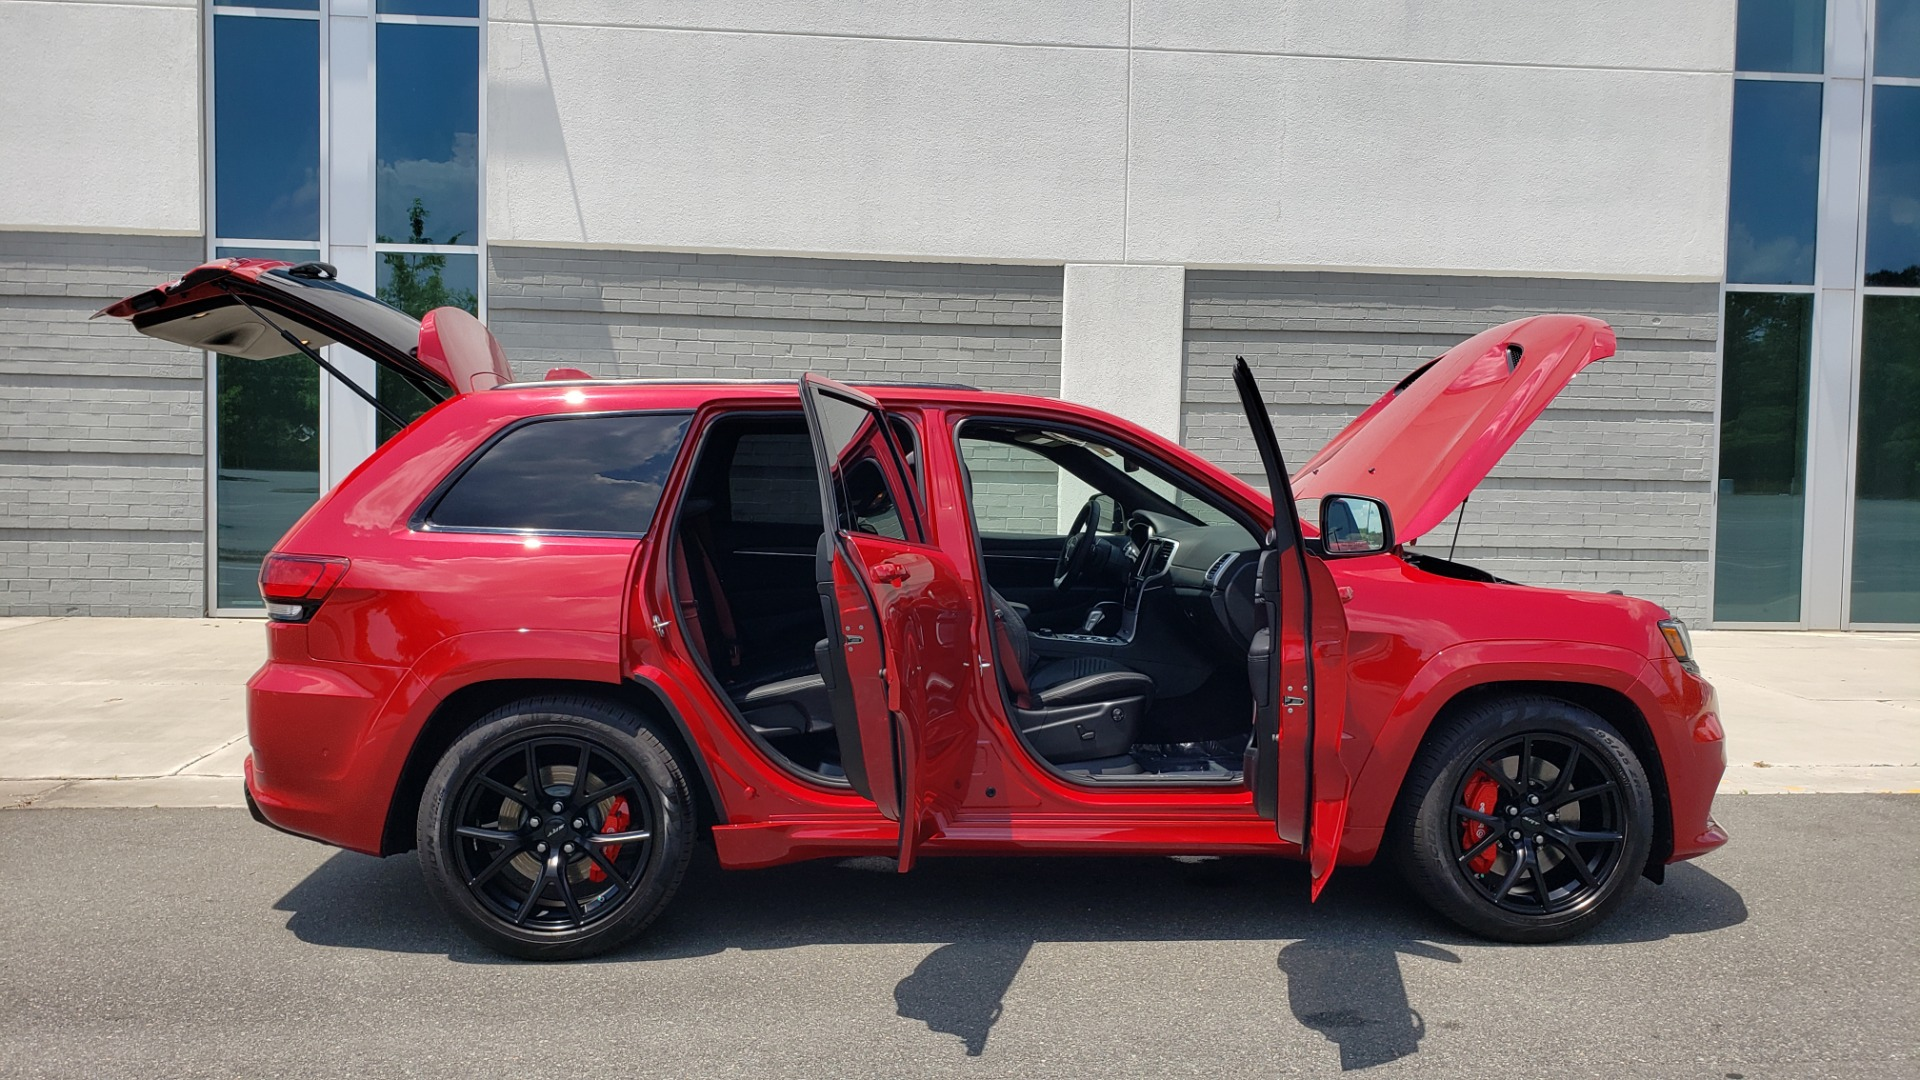 Used 2018 Jeep GRAND CHEROKEE SRT 4X4 / 6.4L HEMI (475HP) / NAV / SUNROOF / H/K SND / REARVIEW for sale Sold at Formula Imports in Charlotte NC 28227 17